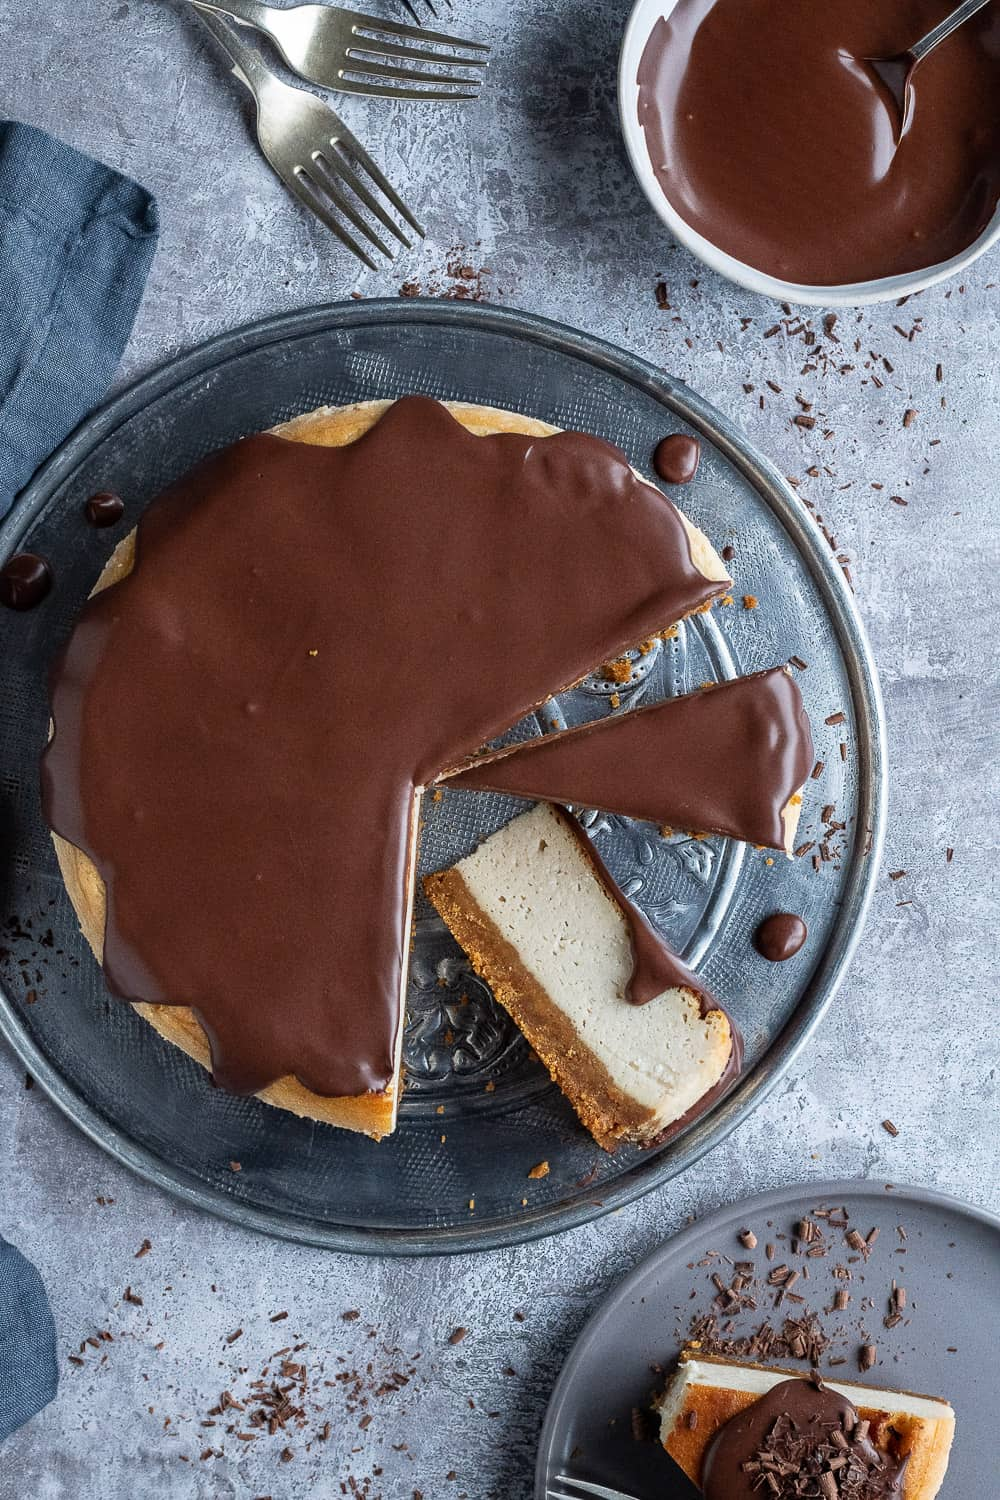 Top down shot of vegan Baileys cheesecake cur into slices on a metal plate with one slice on a grey plate and a bowl of chocolate ganache.